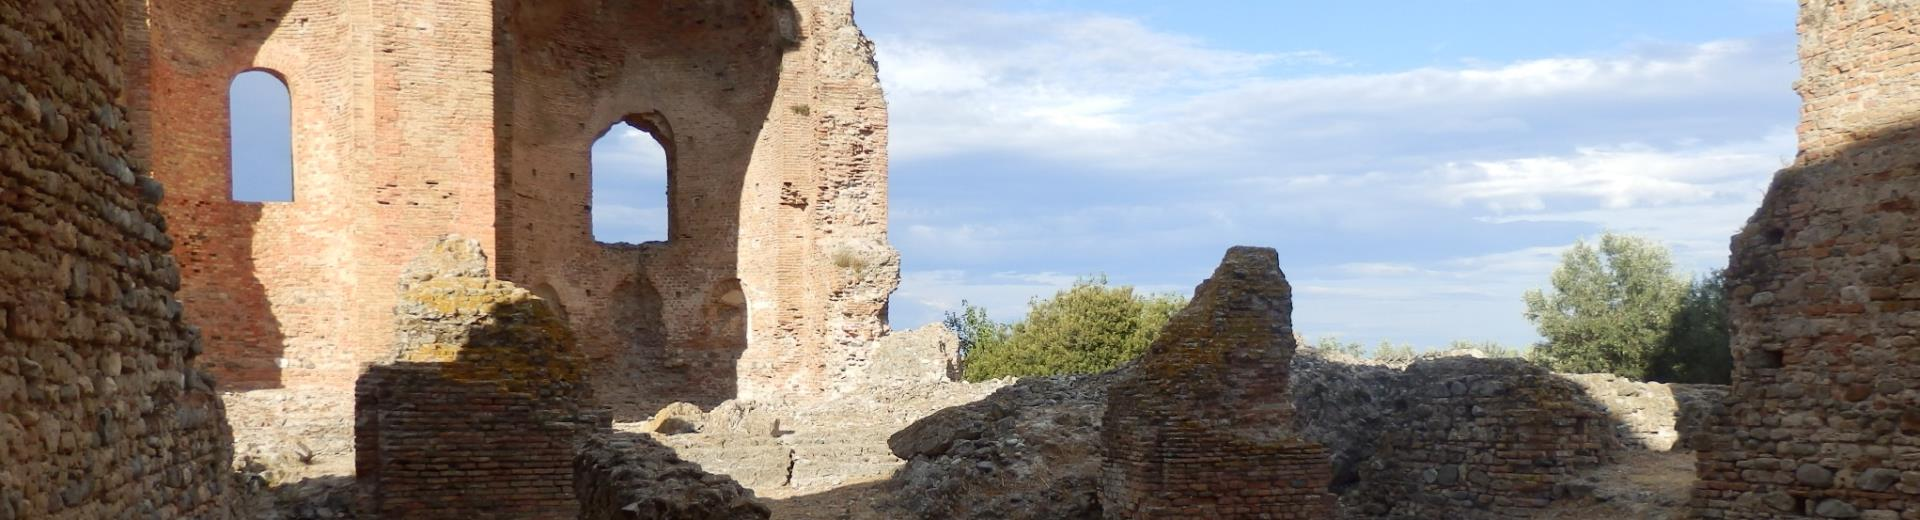 Follow the advice of BW Plus Hotel Perla del Porto and visit the Archaeological Park of Scolacium